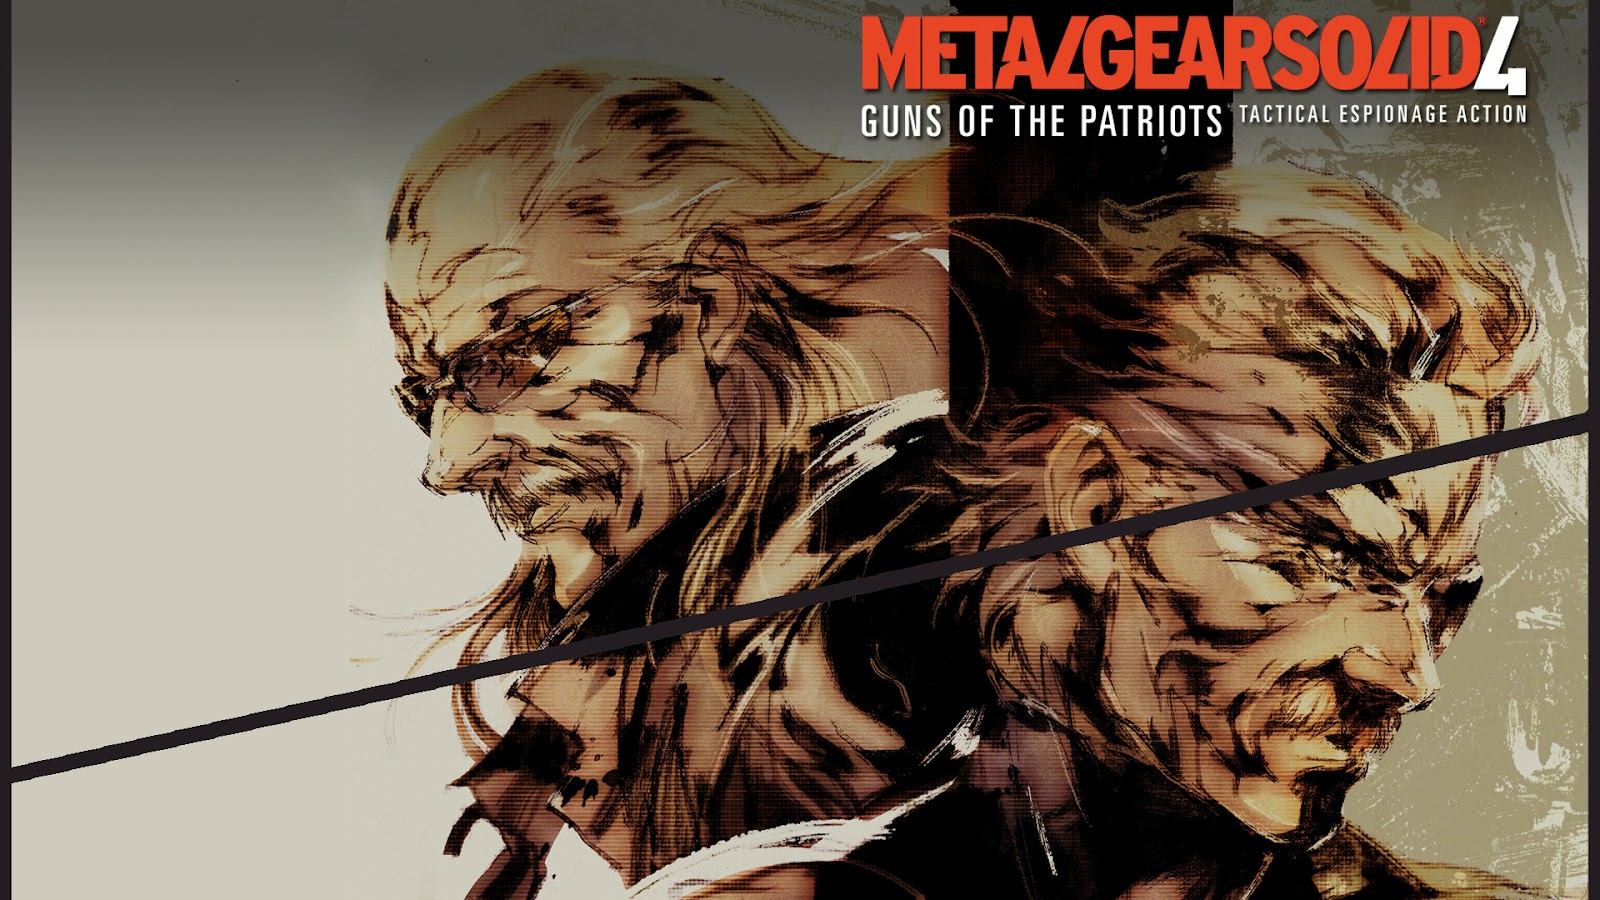 Metal Gear Solid 4 HD PS3 by TexStar05 Metal Gear Solid 4: Guns of the Patriots Wallpapers in HD